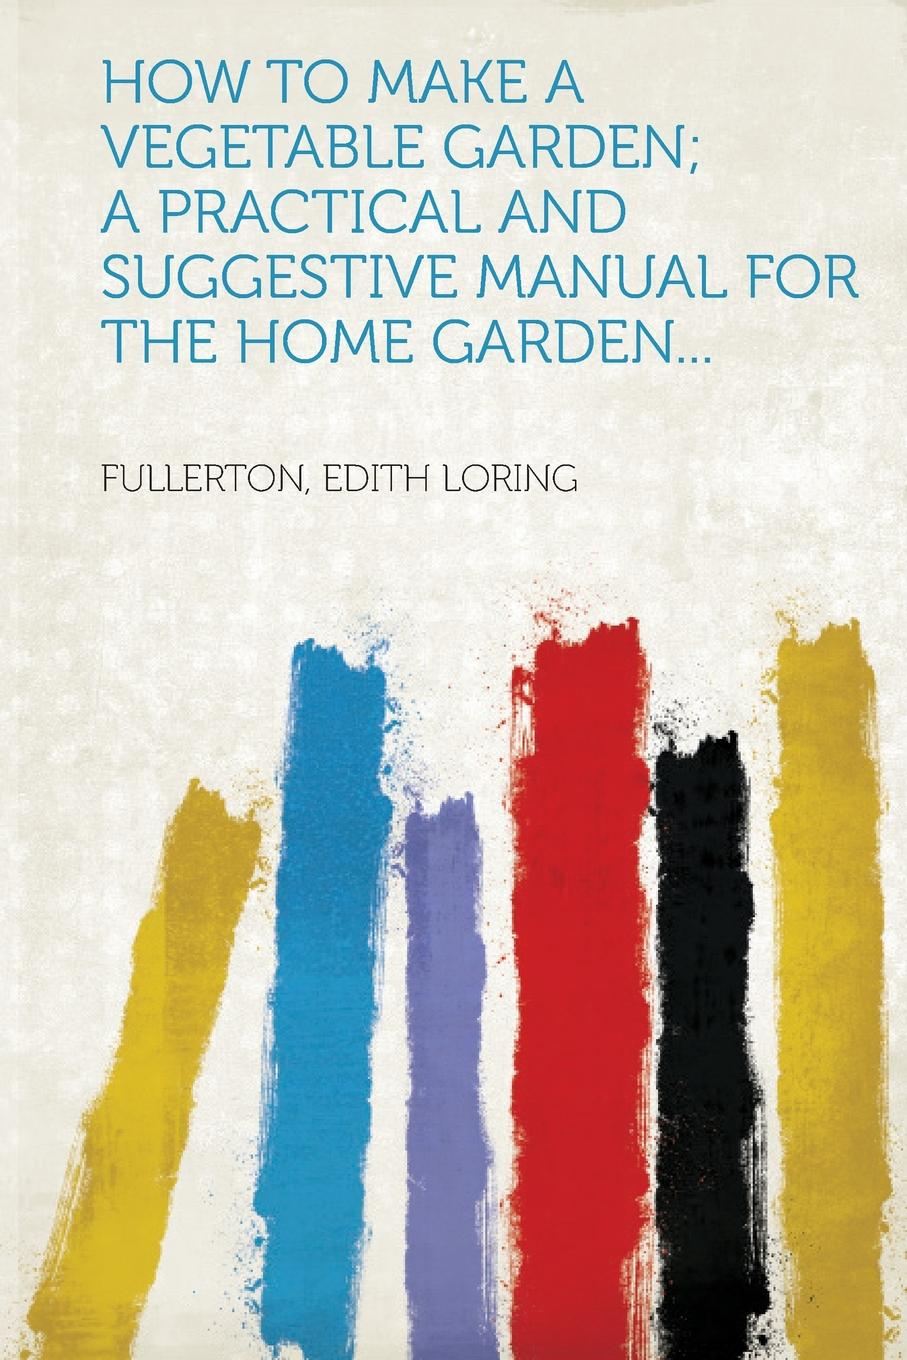 How to Make a Vegetable Garden; A Practical and Suggestive Manual for the Home Garden...